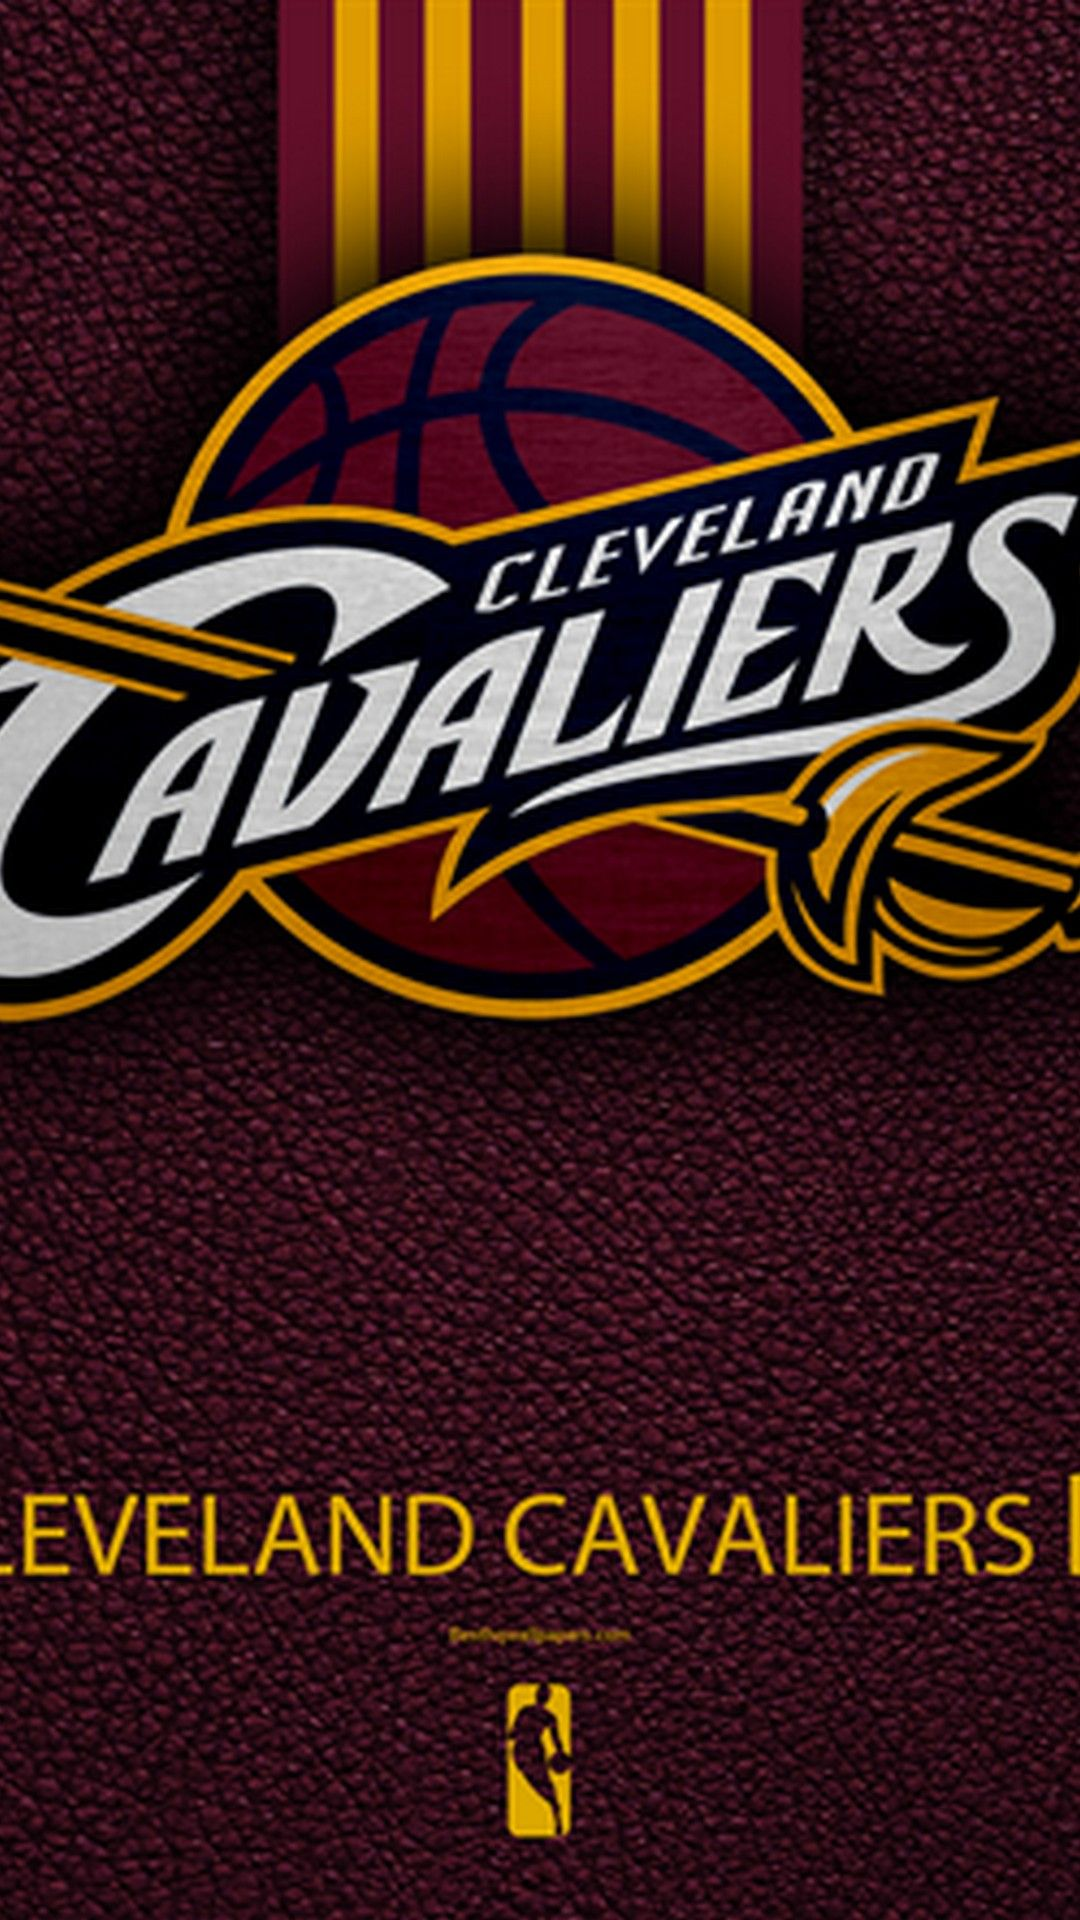 Iphone Wallpaper Hd Cleveland Cavaliers 2021 Basketball Wallpaper Basketball Wallpapers Hd Basketball Wallpaper Basketball Pictures